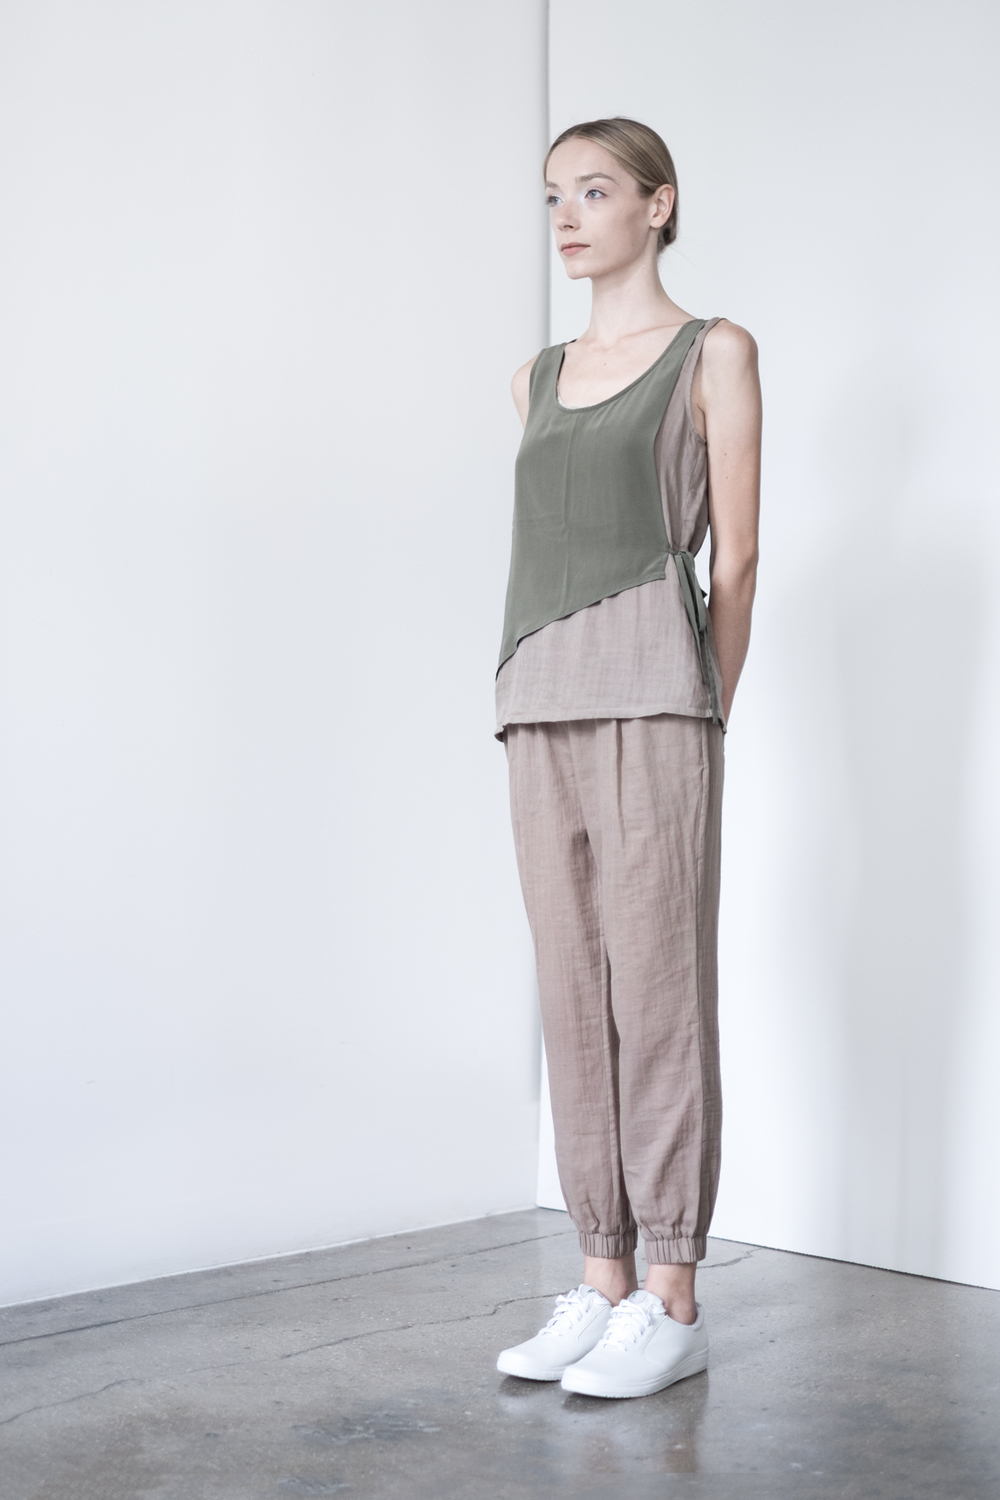 LOOK 21   TOP:   2265  / Timber   -     Sleeveless pullover with silk crepe de chine overlay and tie.   BOTTOM:   2290  / Timber  -   Jogger pants in 100% Cotton woven dbl. layer gauze.